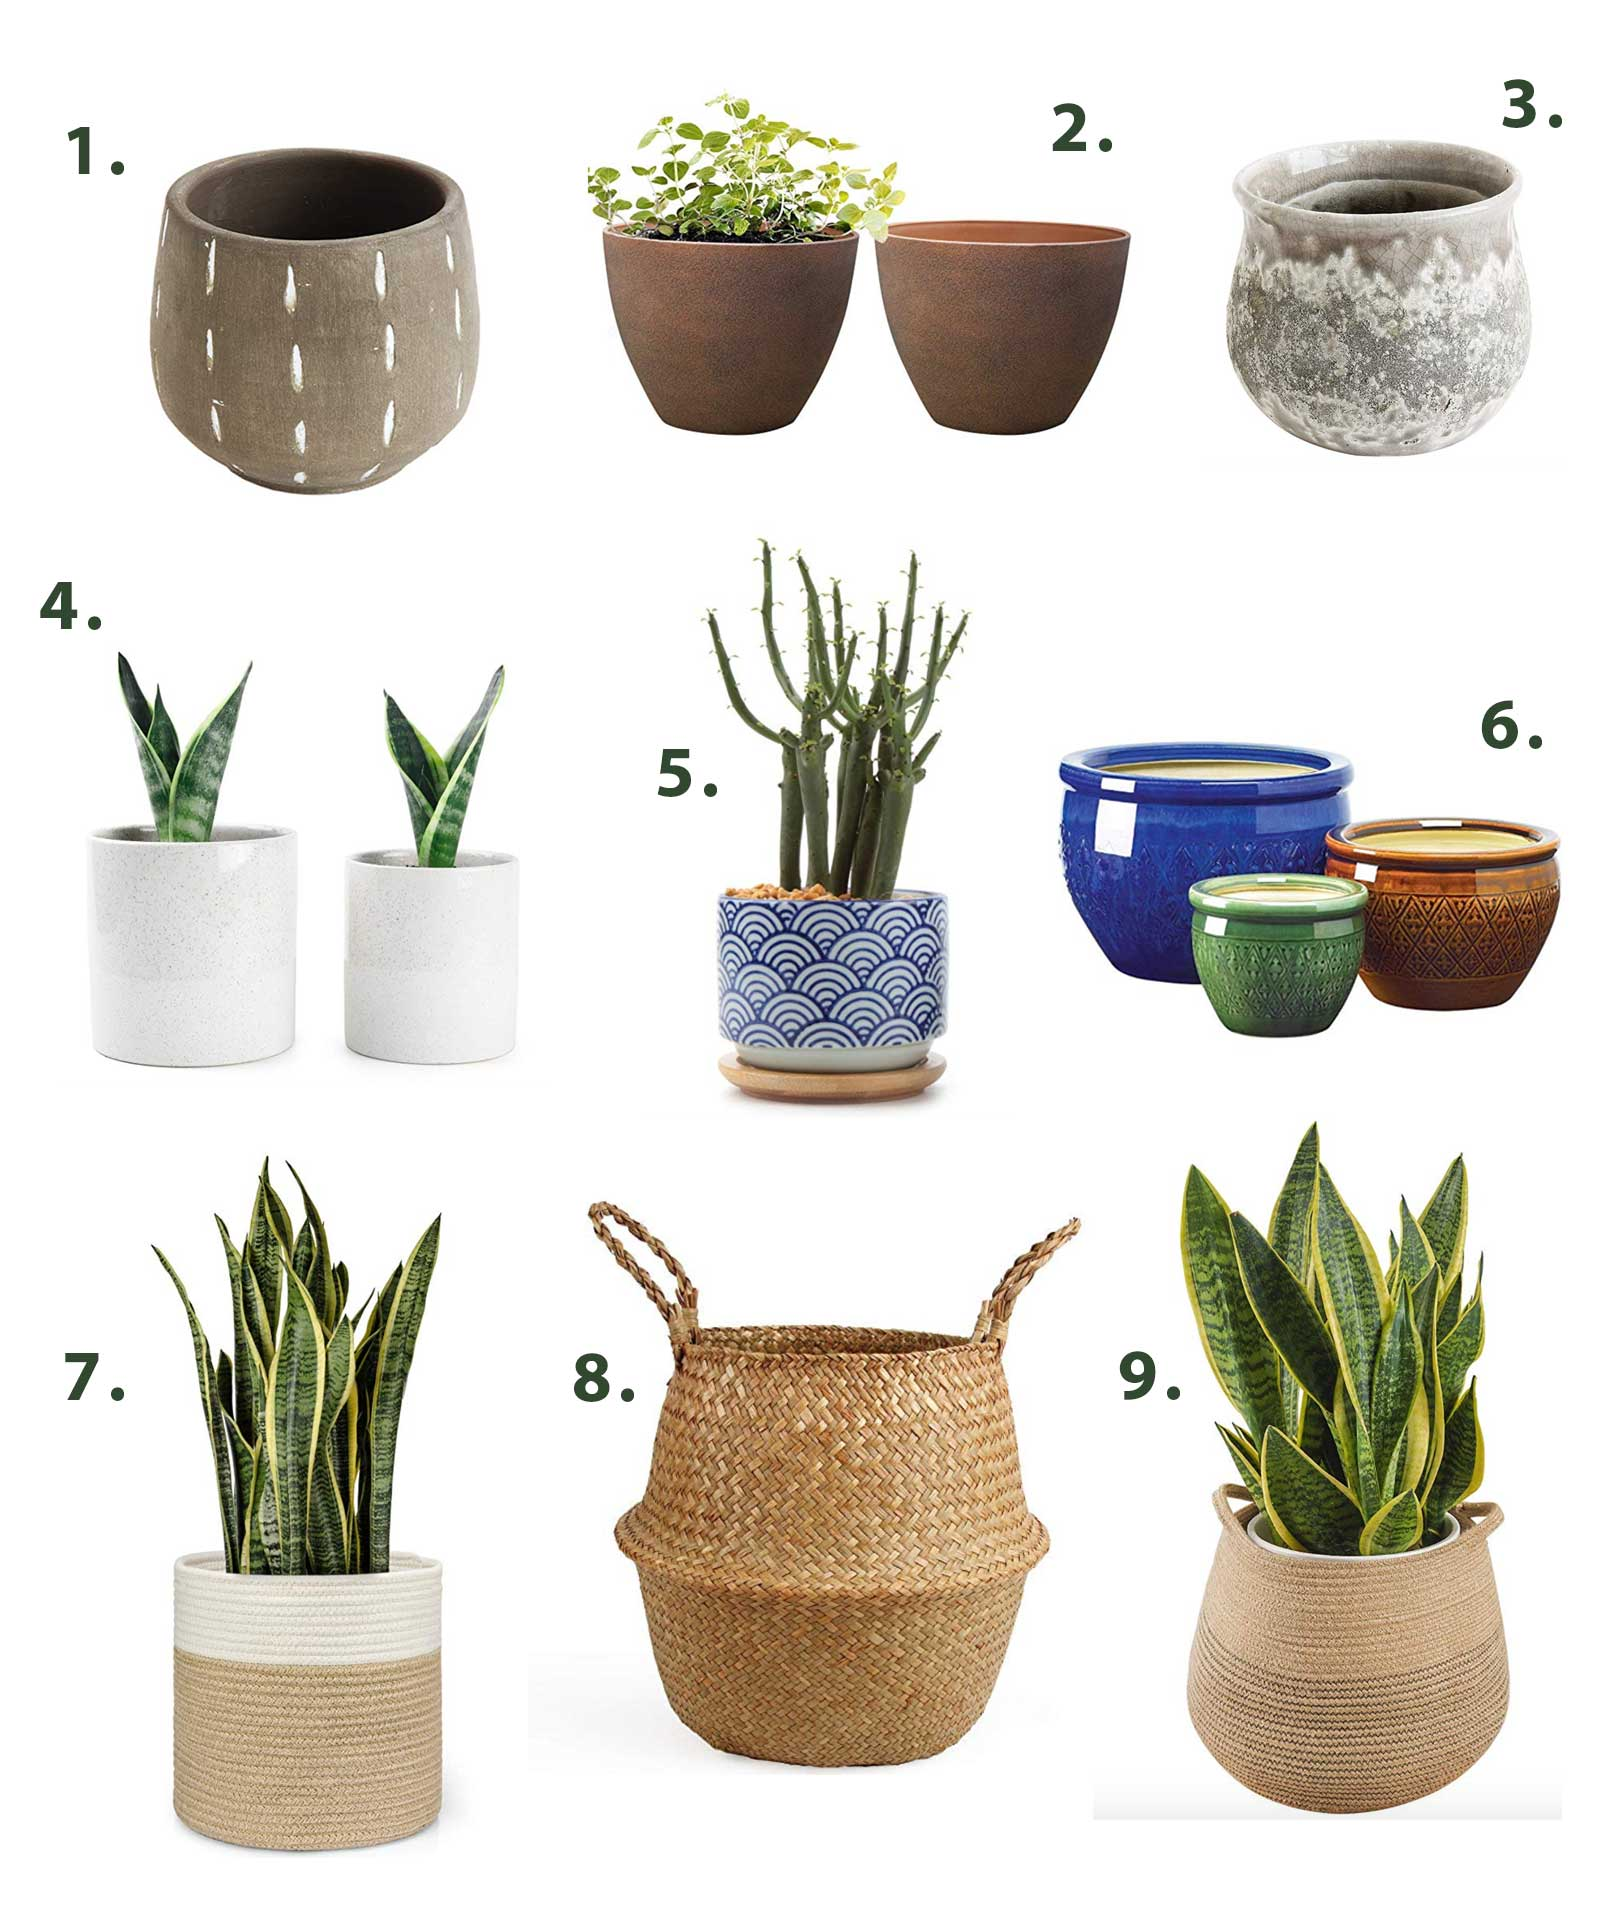 Plastic-Free plant pot options